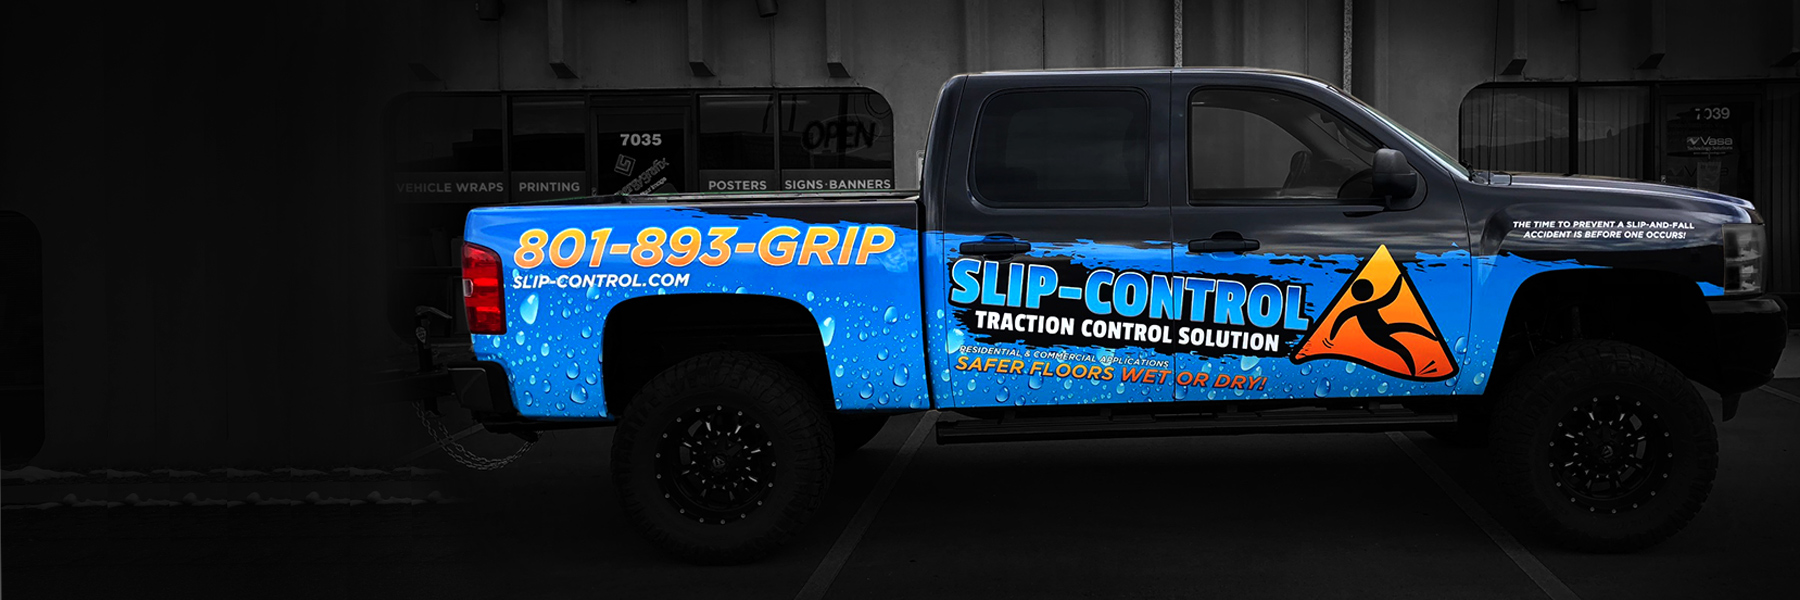 Utah Vehicle Wraps - Slip Control Truck